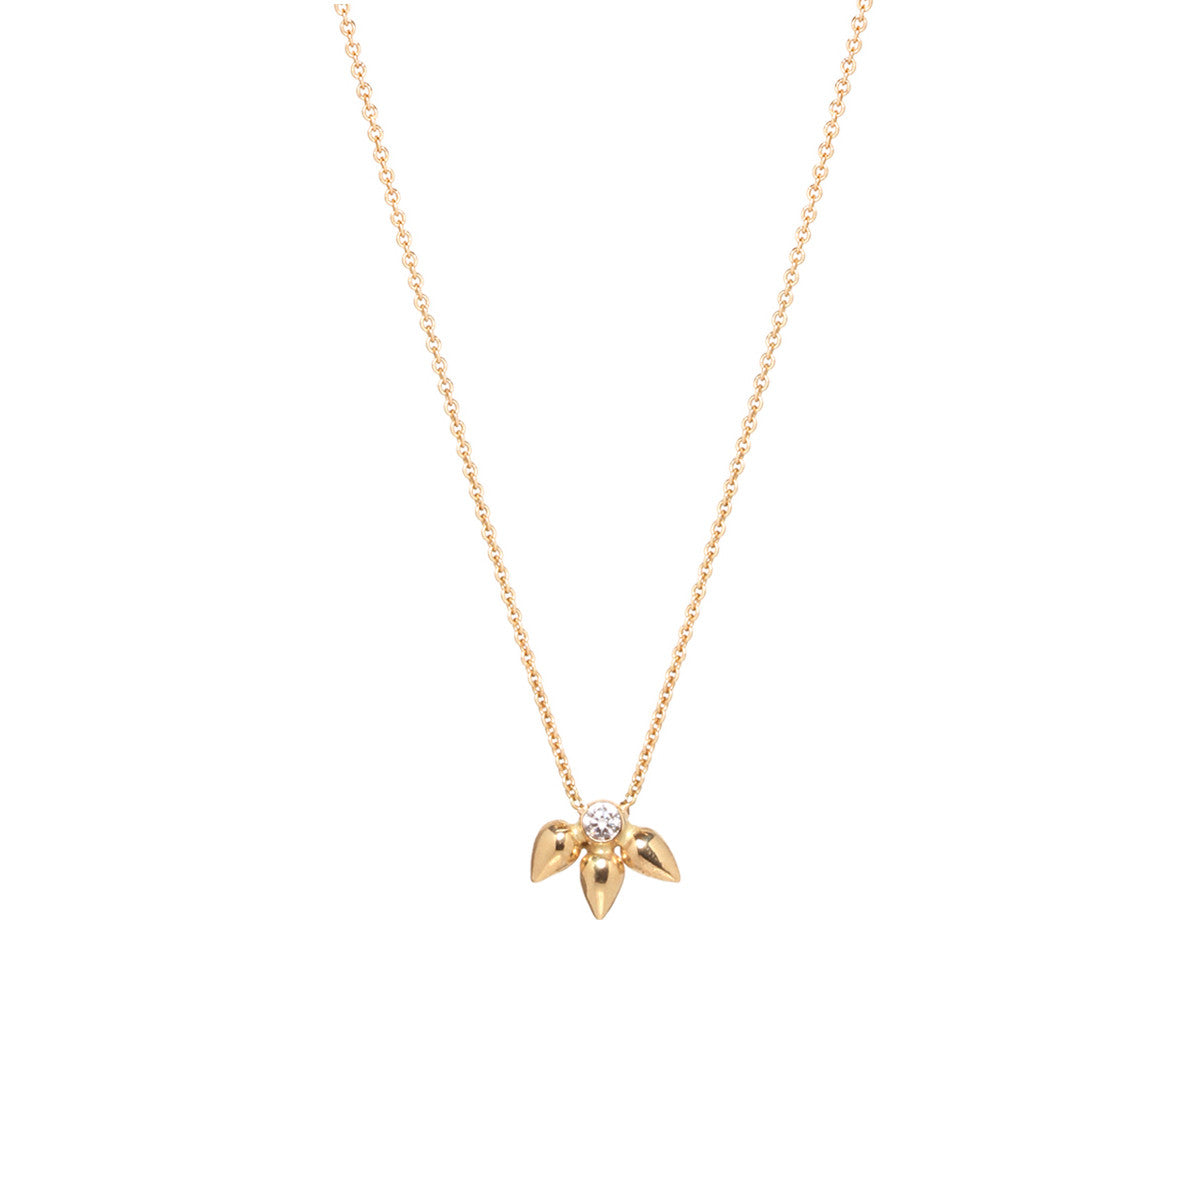 Zoë Chicco 14kt Yellow Gold White Diamond Bullet Cluster Necklace